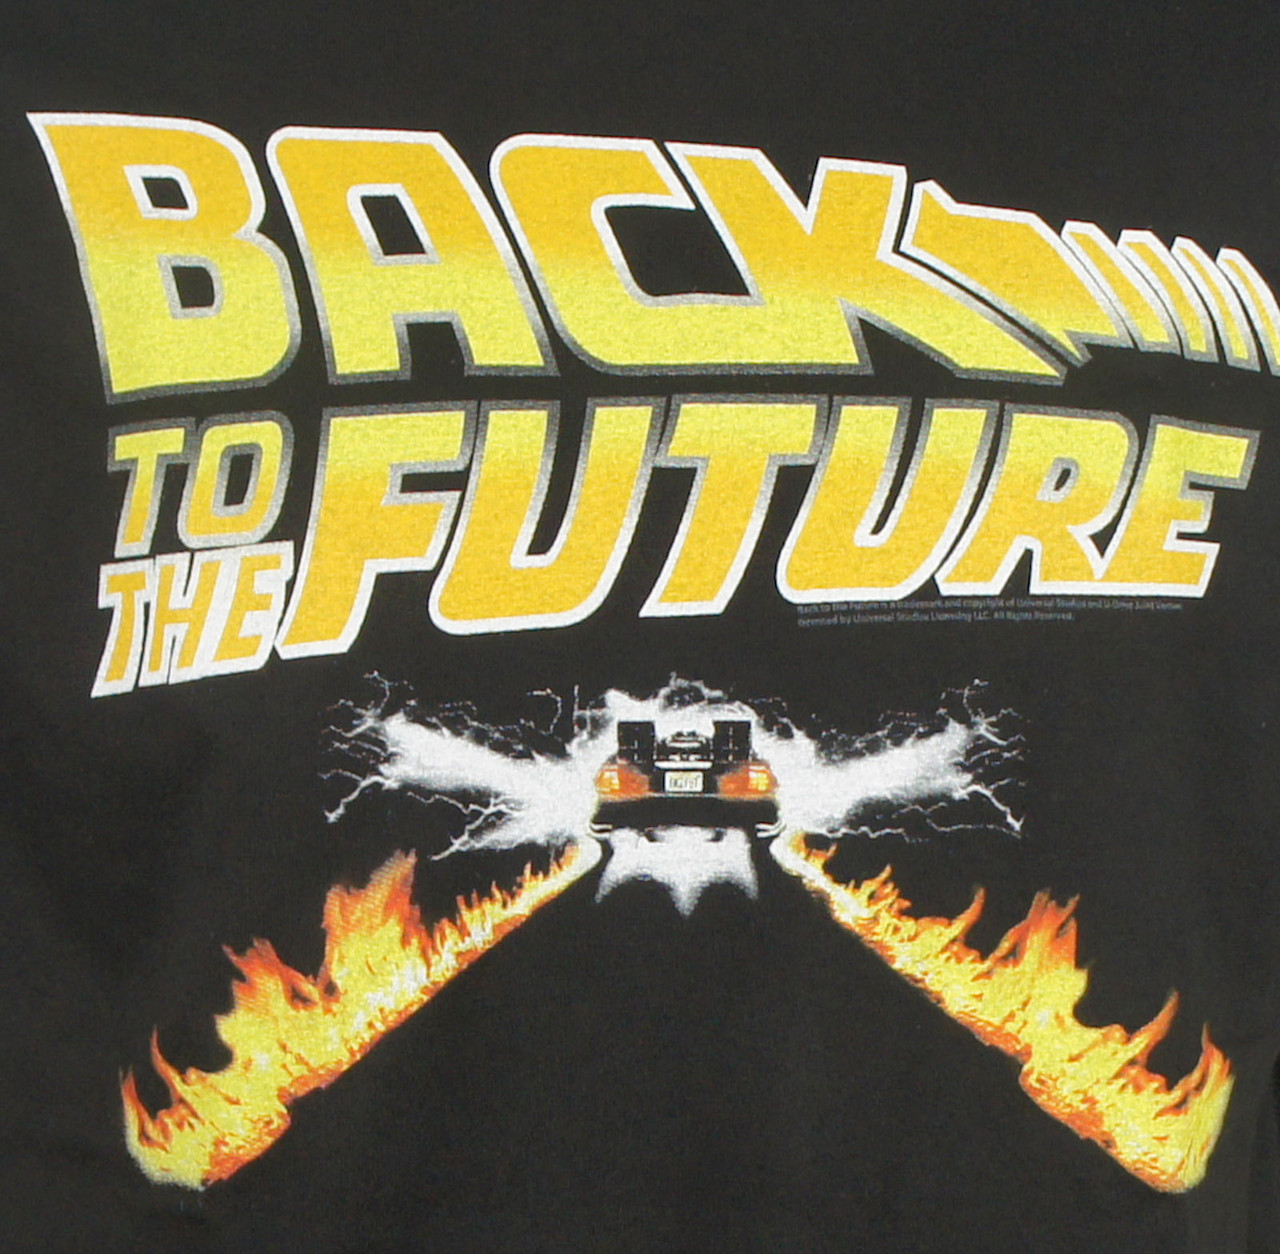 http://d3d71ba2asa5oz.cloudfront.net/12013655/images/btf501%20back%20to%20the%20future%20flaming%20delorean-14.jpg